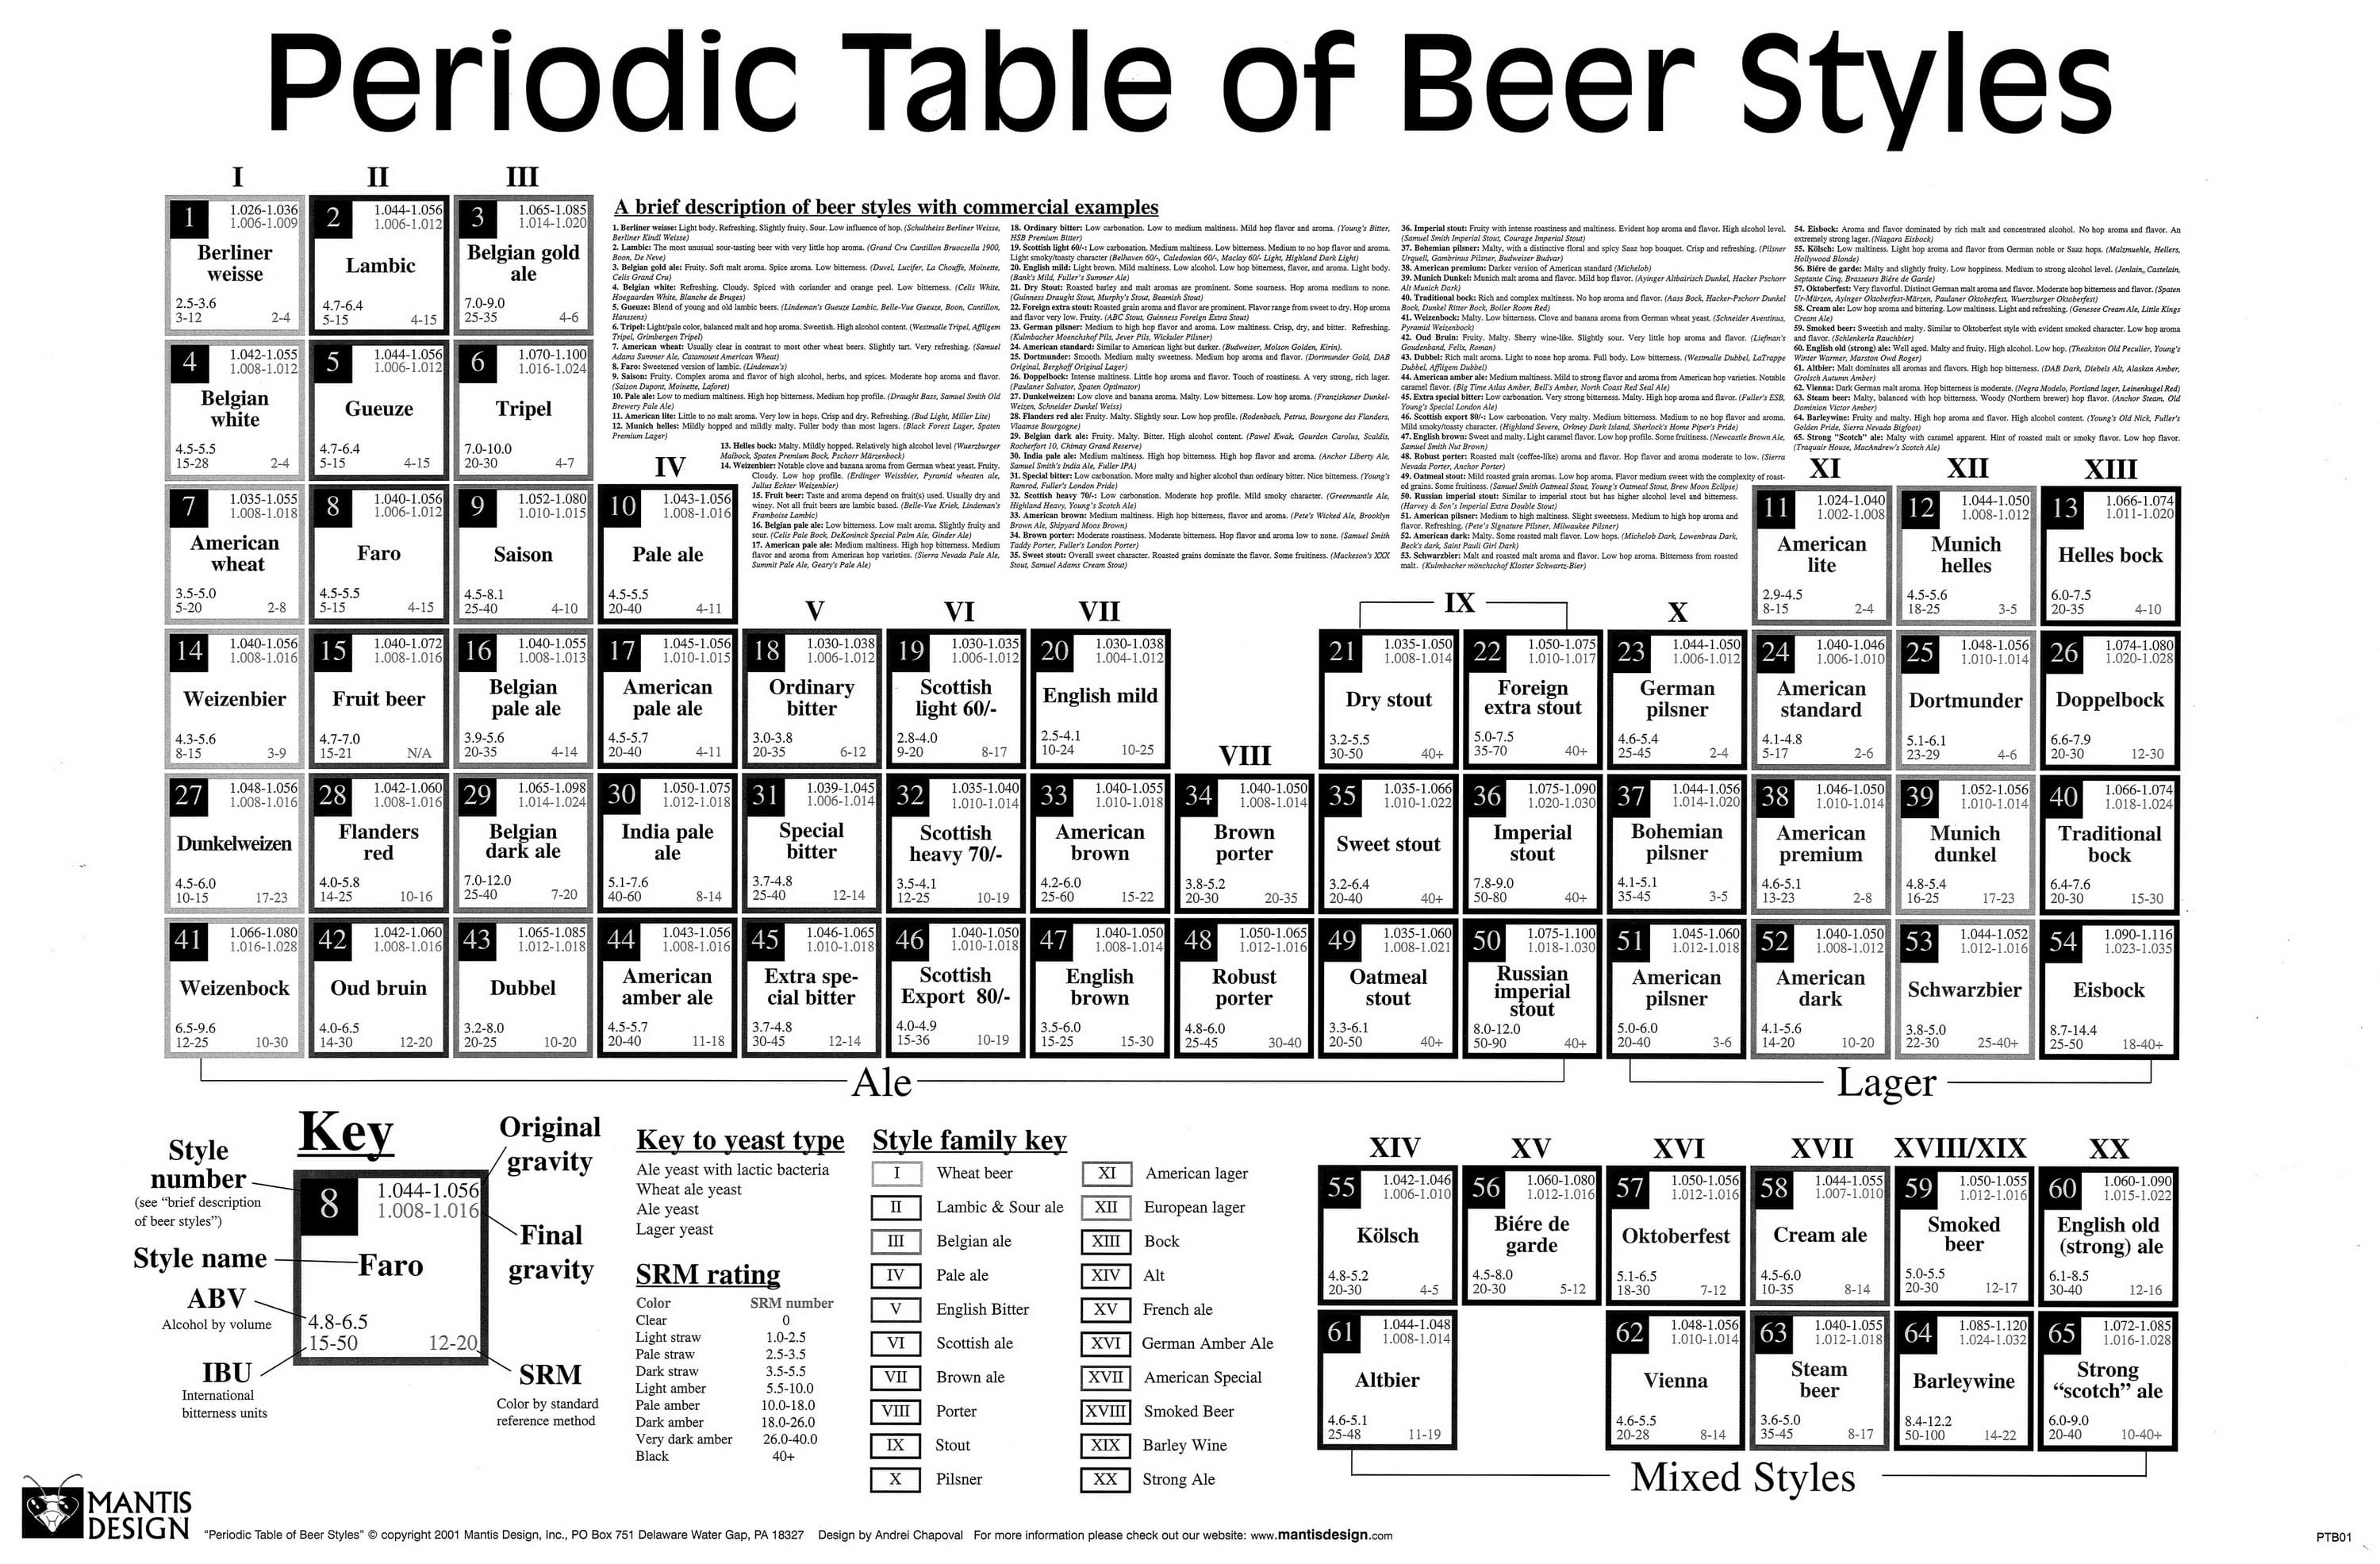 beers-periodic-table_50290a5d22692.jpg